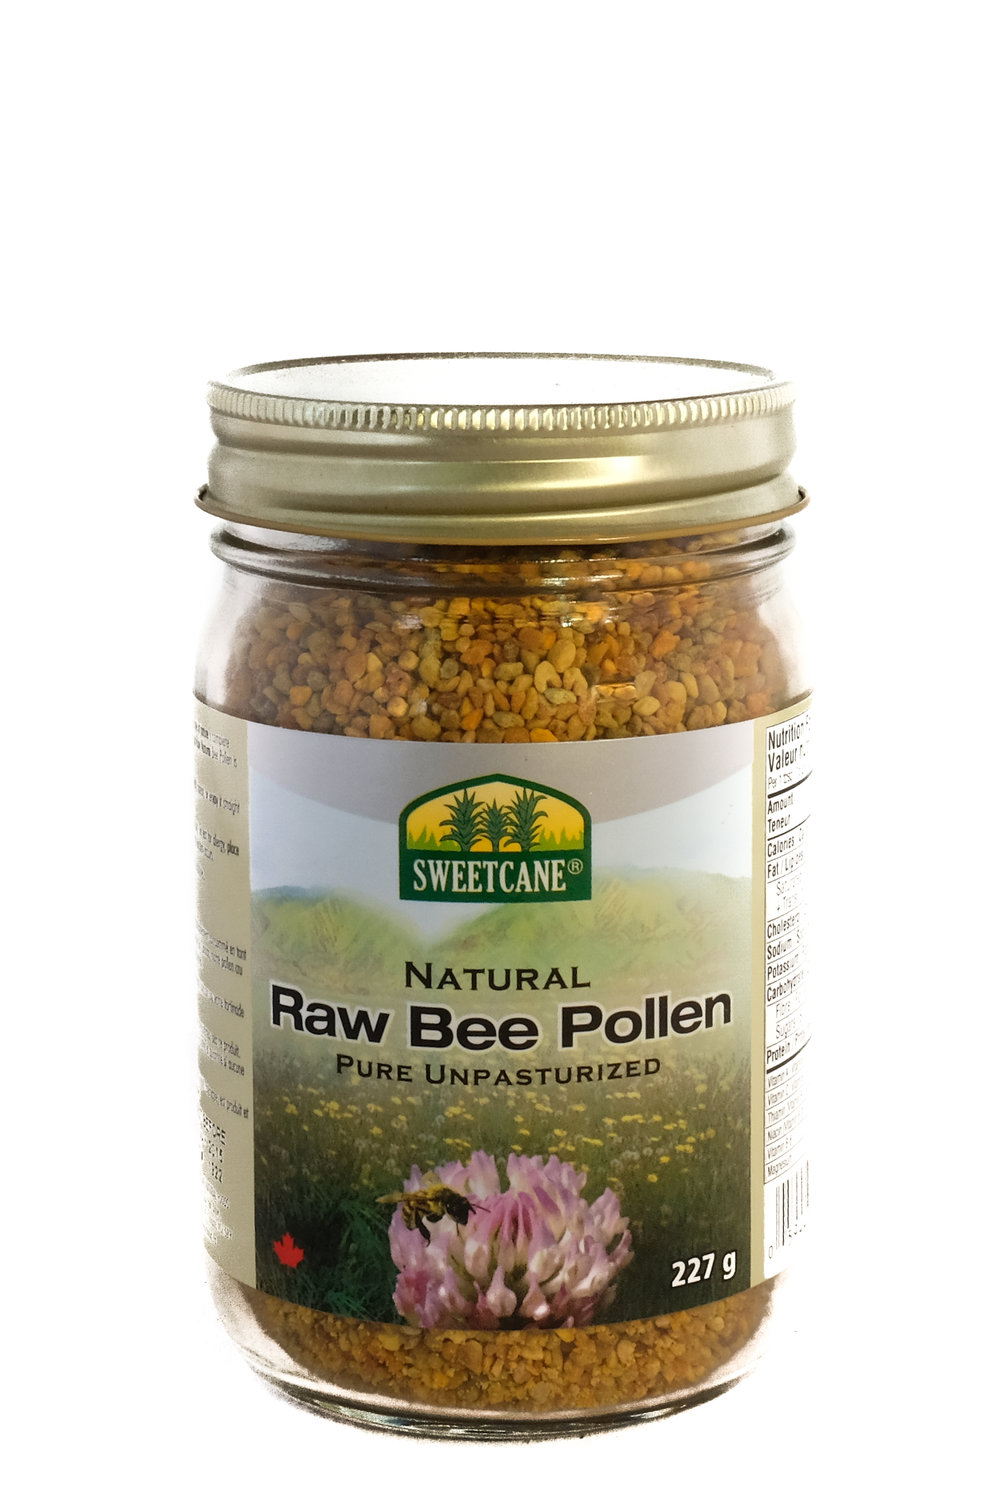 Natural Raw Bee Pollen